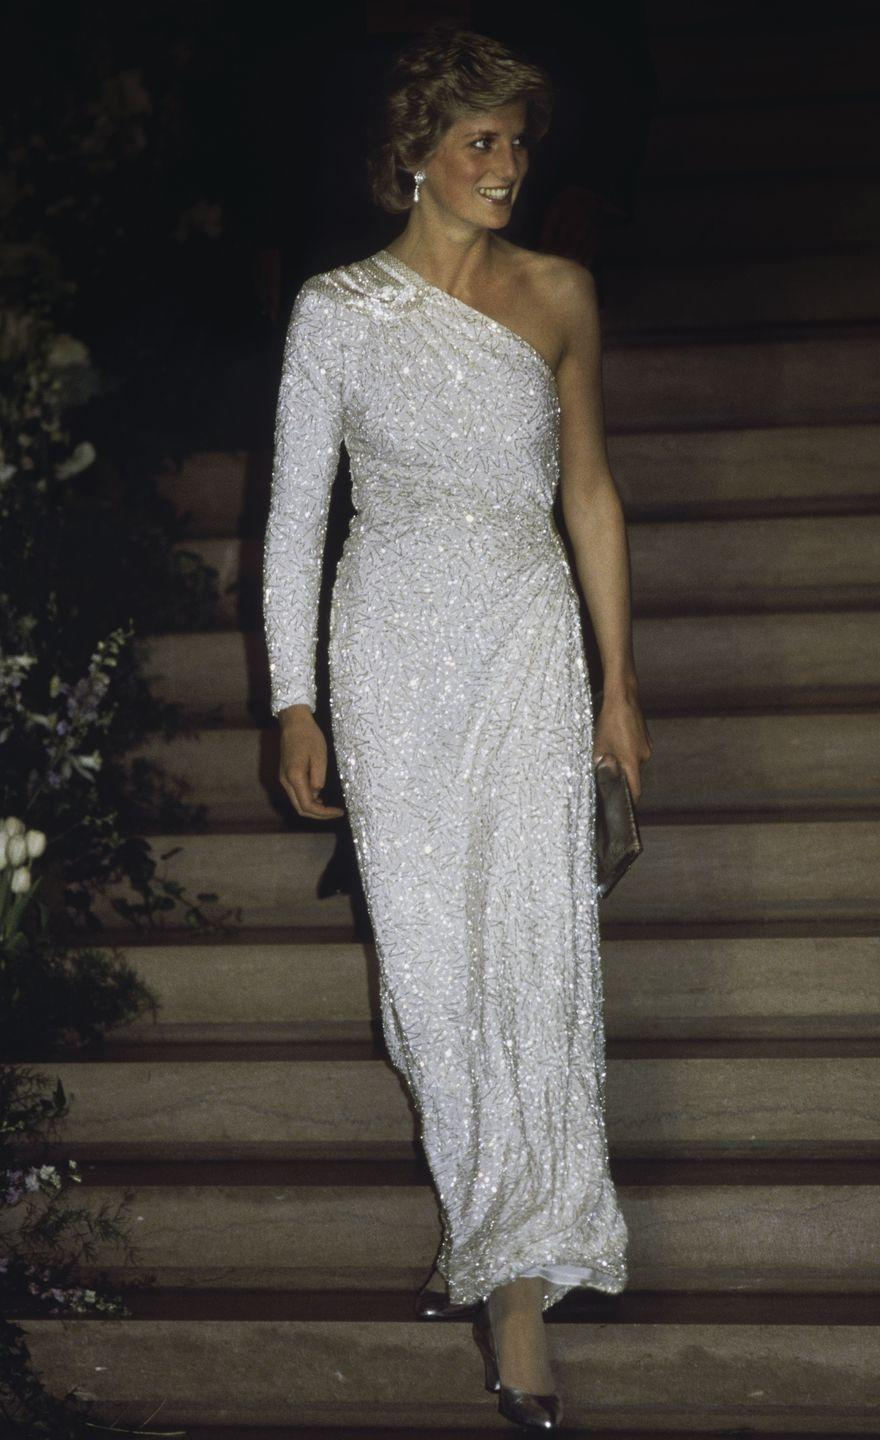 <p>The late, beloved Princess of Wales wore a crystal beaded gown by Japanese designer Hachi to a Washington D.C. gala in 1985.</p>